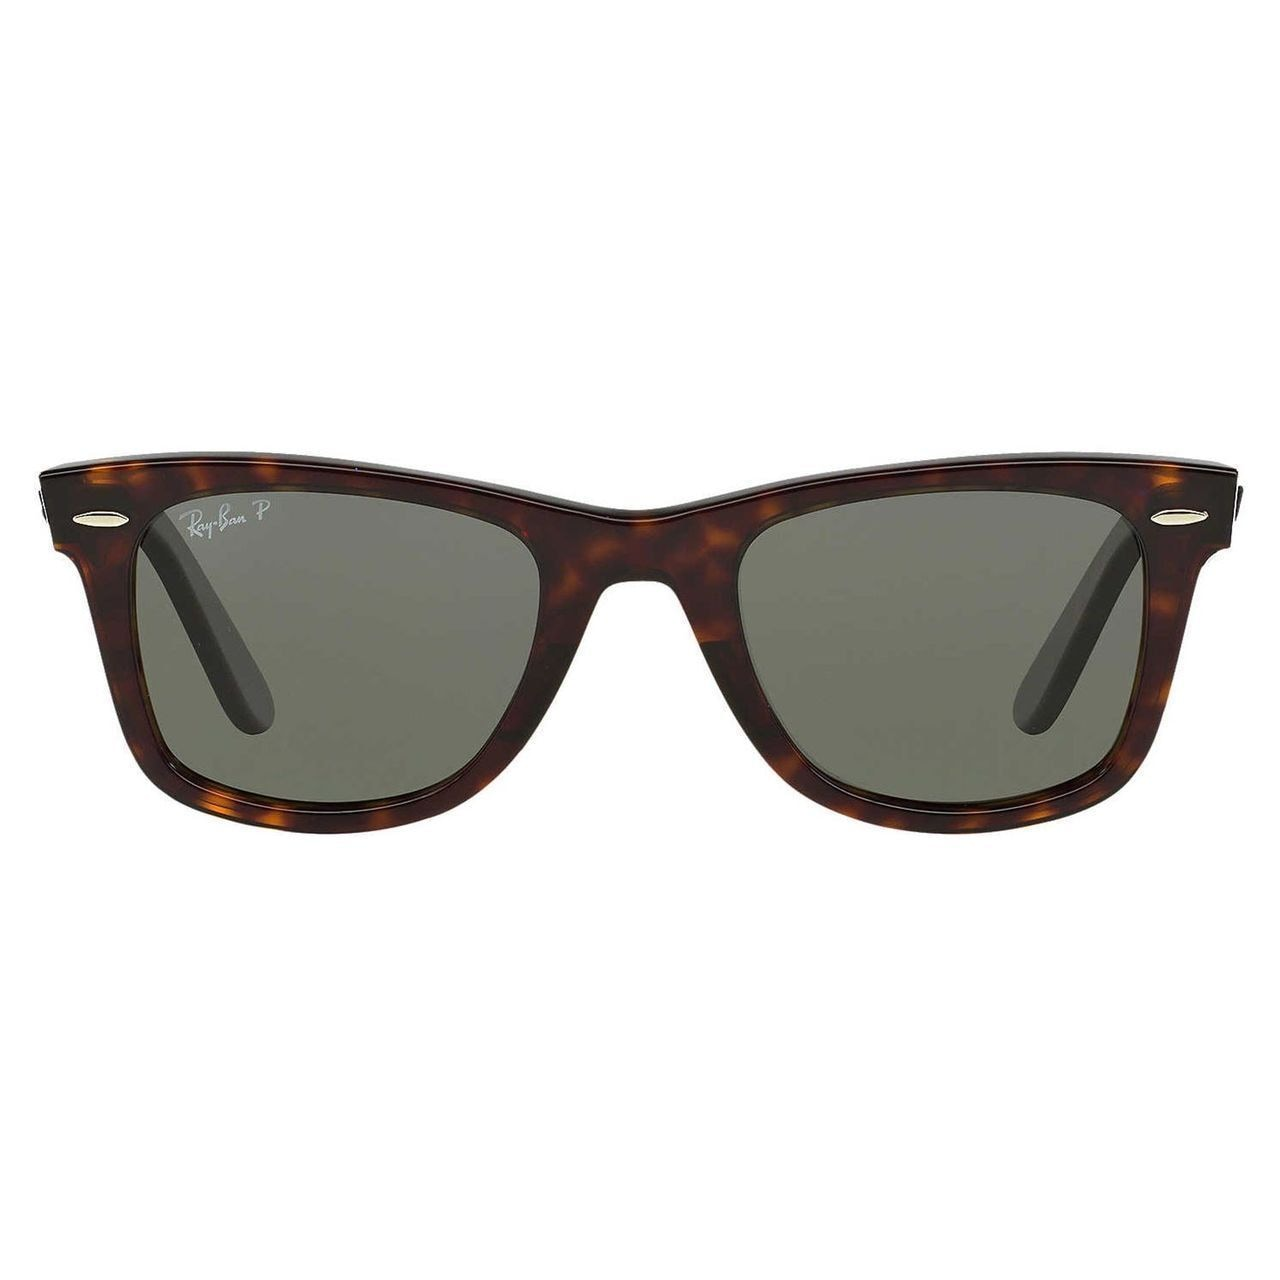 5277186c25 Shop Ray Ban Unisex RB 2140 Original Wayfarer 902 58 Havana Plastic  Polarized 50mm Sunglasses - Free Shipping Today - Overstock - 9990464